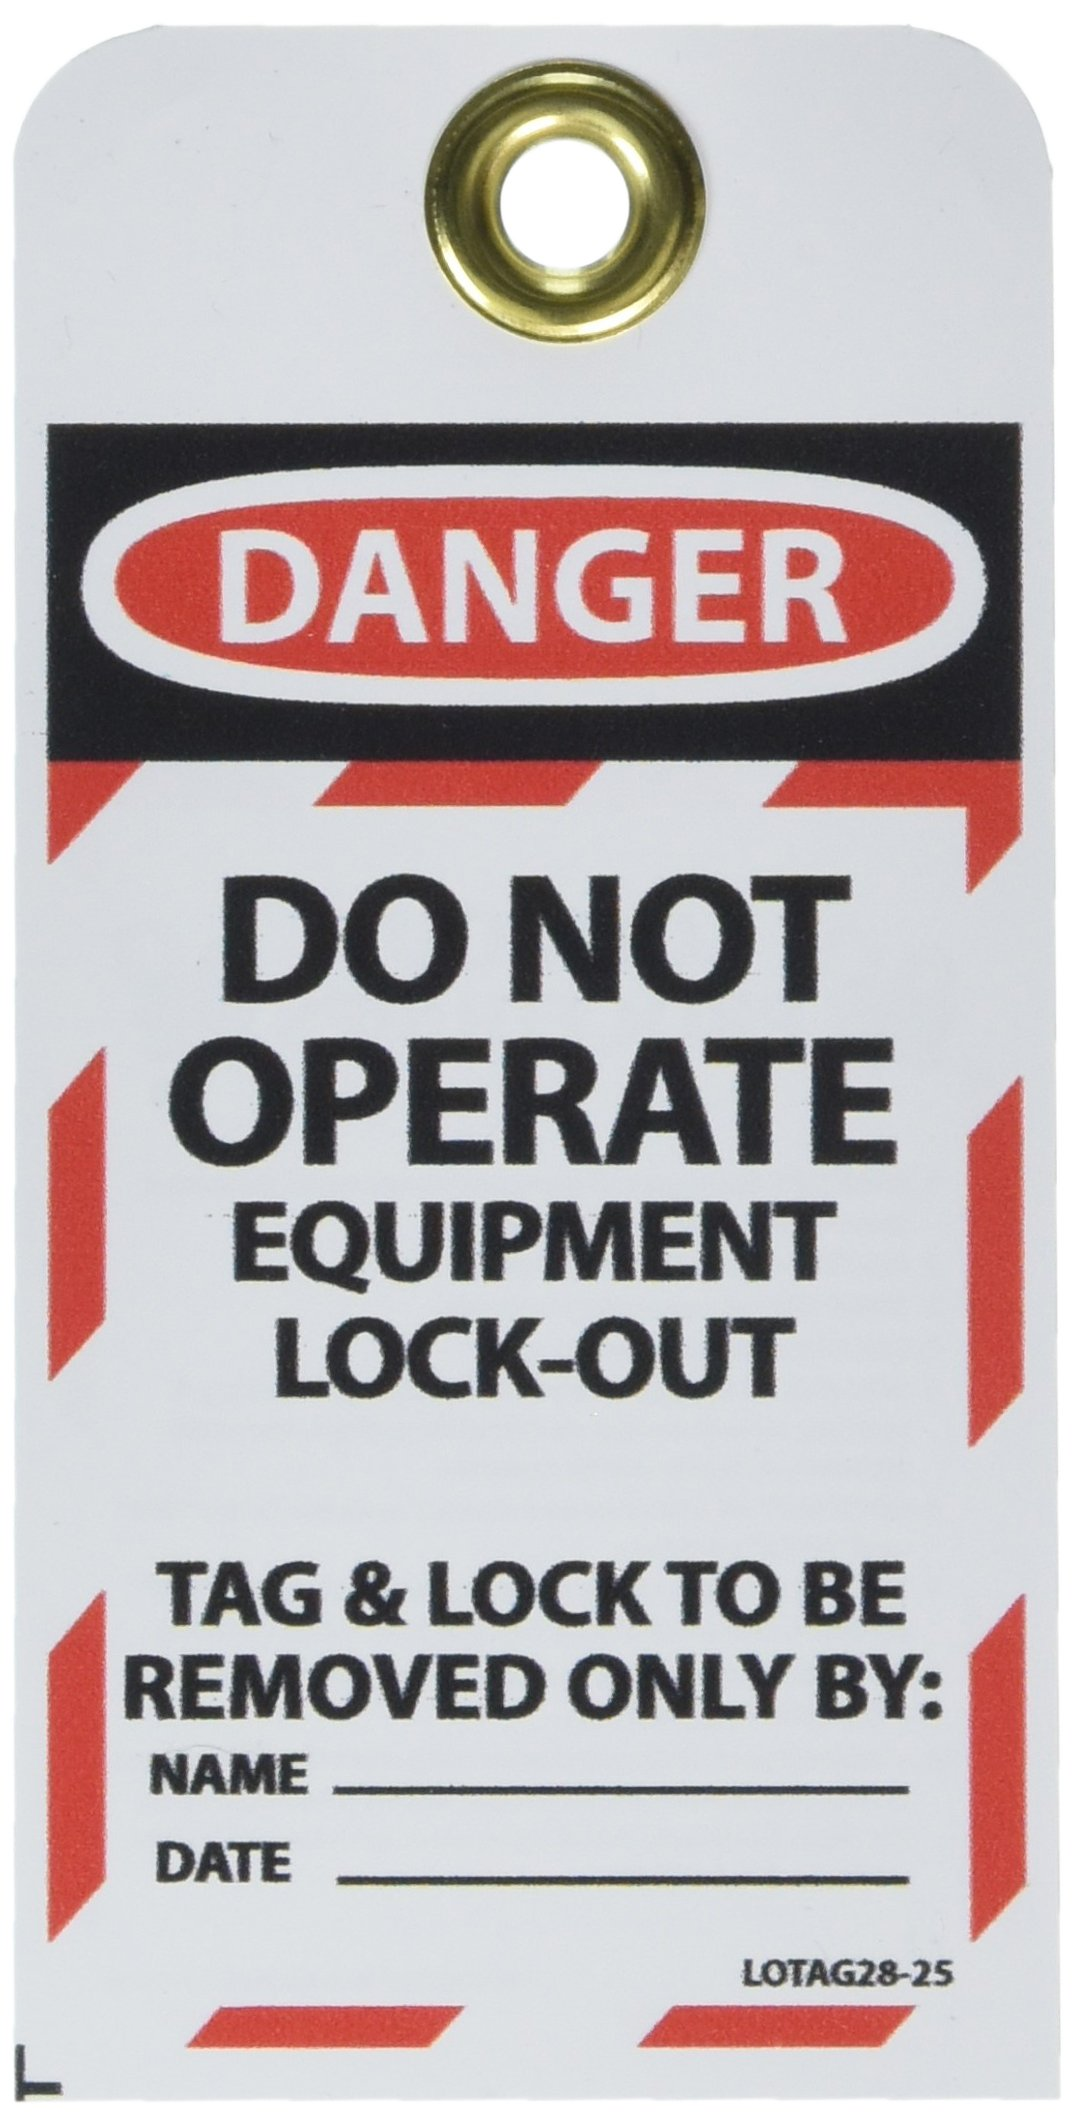 NMC LOTAG28-25''Danger - DO NOT Operate EUIPMENT Lock-Out'' Lockout Tag, Unrippable Vinyl, 3'' Length, 6'' Height, Black/Red on White (Pack of 25) by NMC